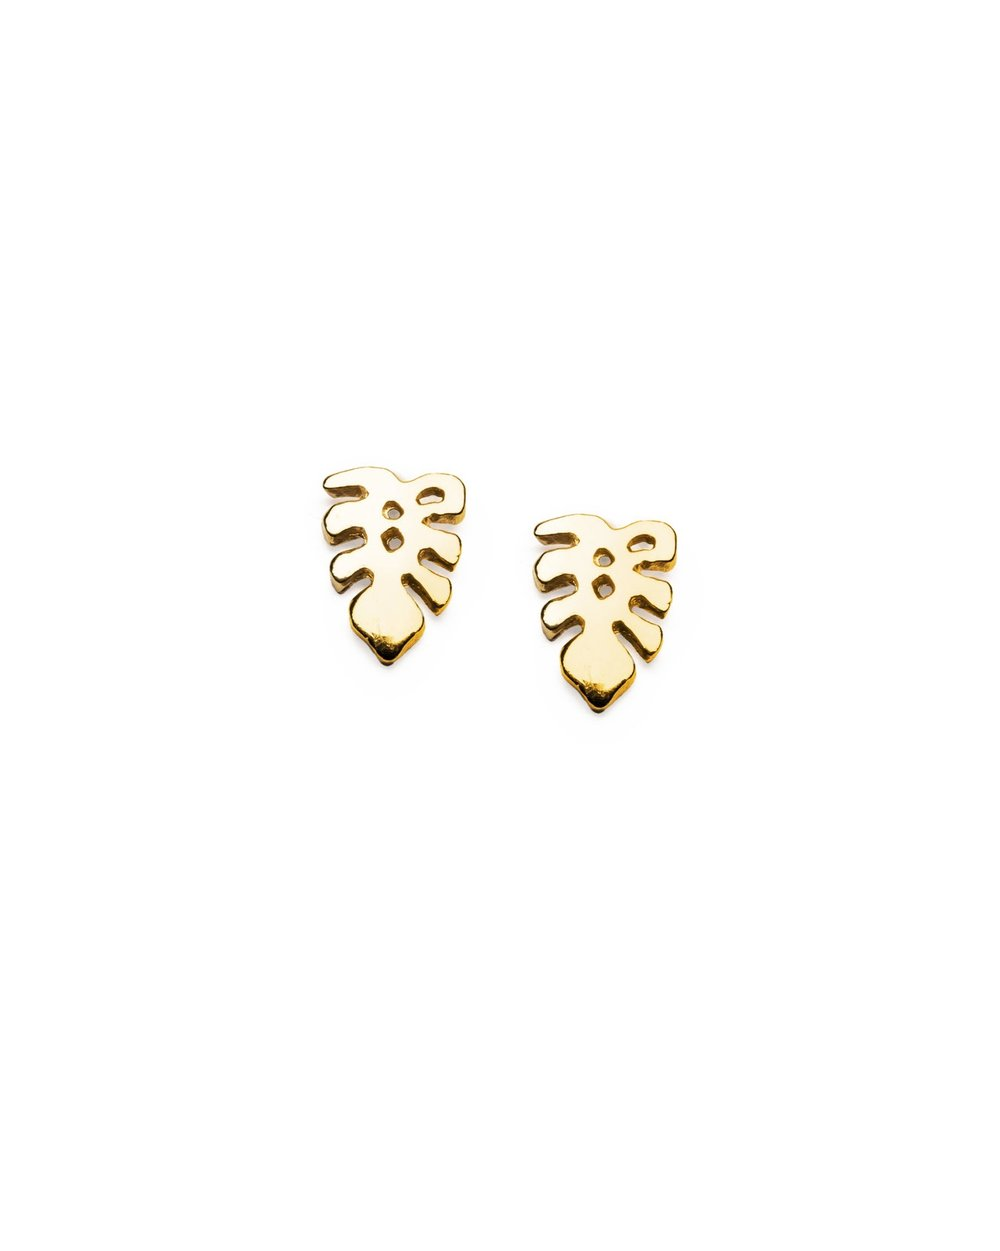 Manoa Monstera studs